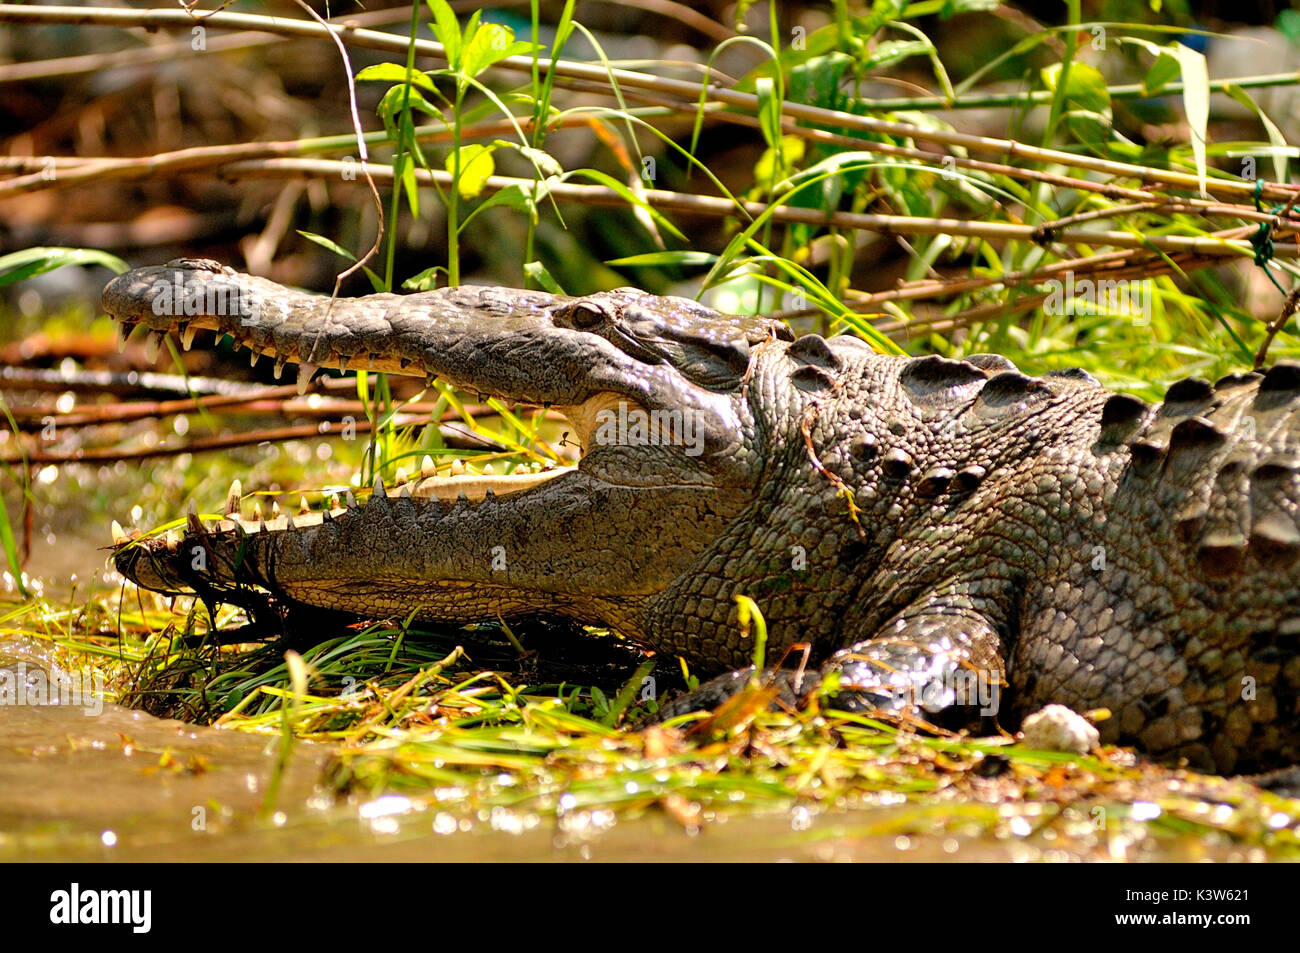 Crocodile in the natural park of Sumidero canyon in Chiapas, Mexico. - Stock Image